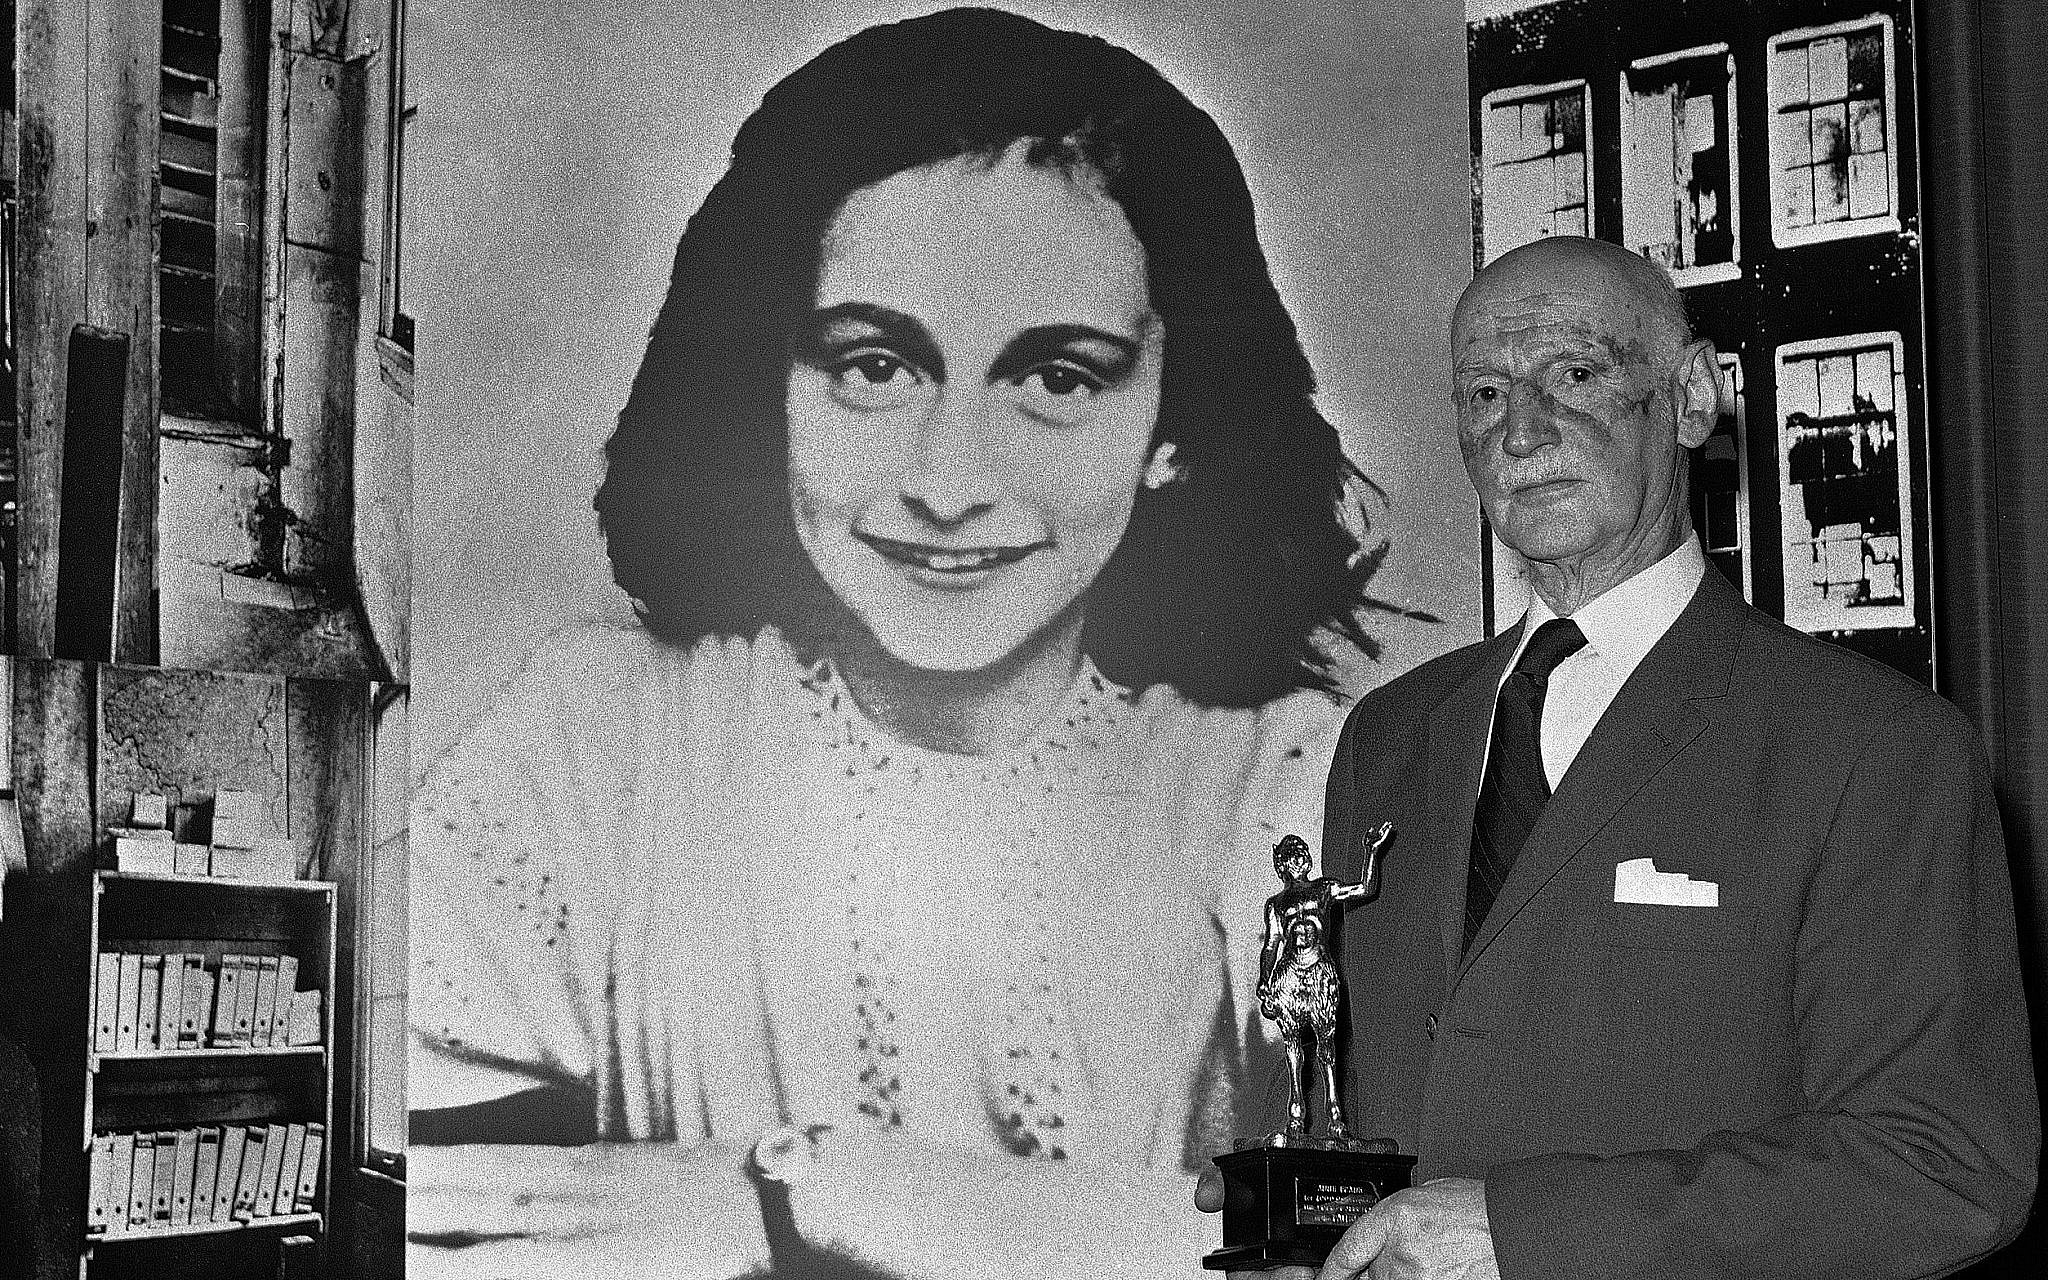 Anne Frank's visa application for America frustrated by 'bureaucracy, war and time'